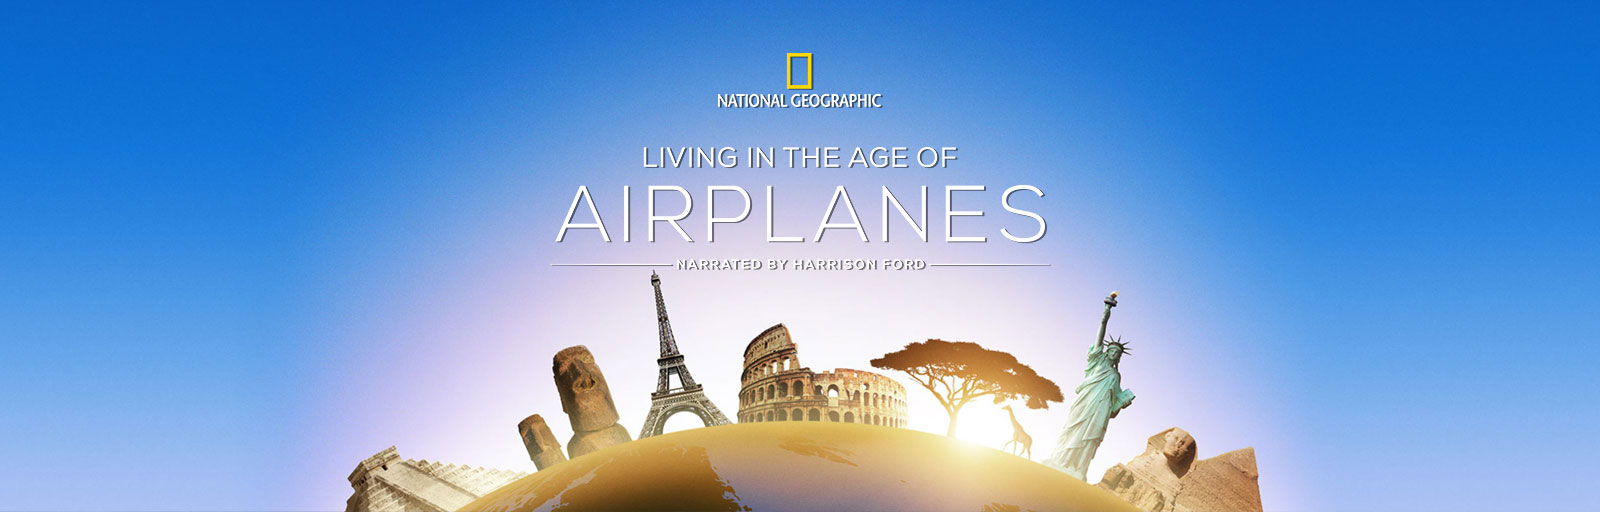 livinginageofairplanes-webslider